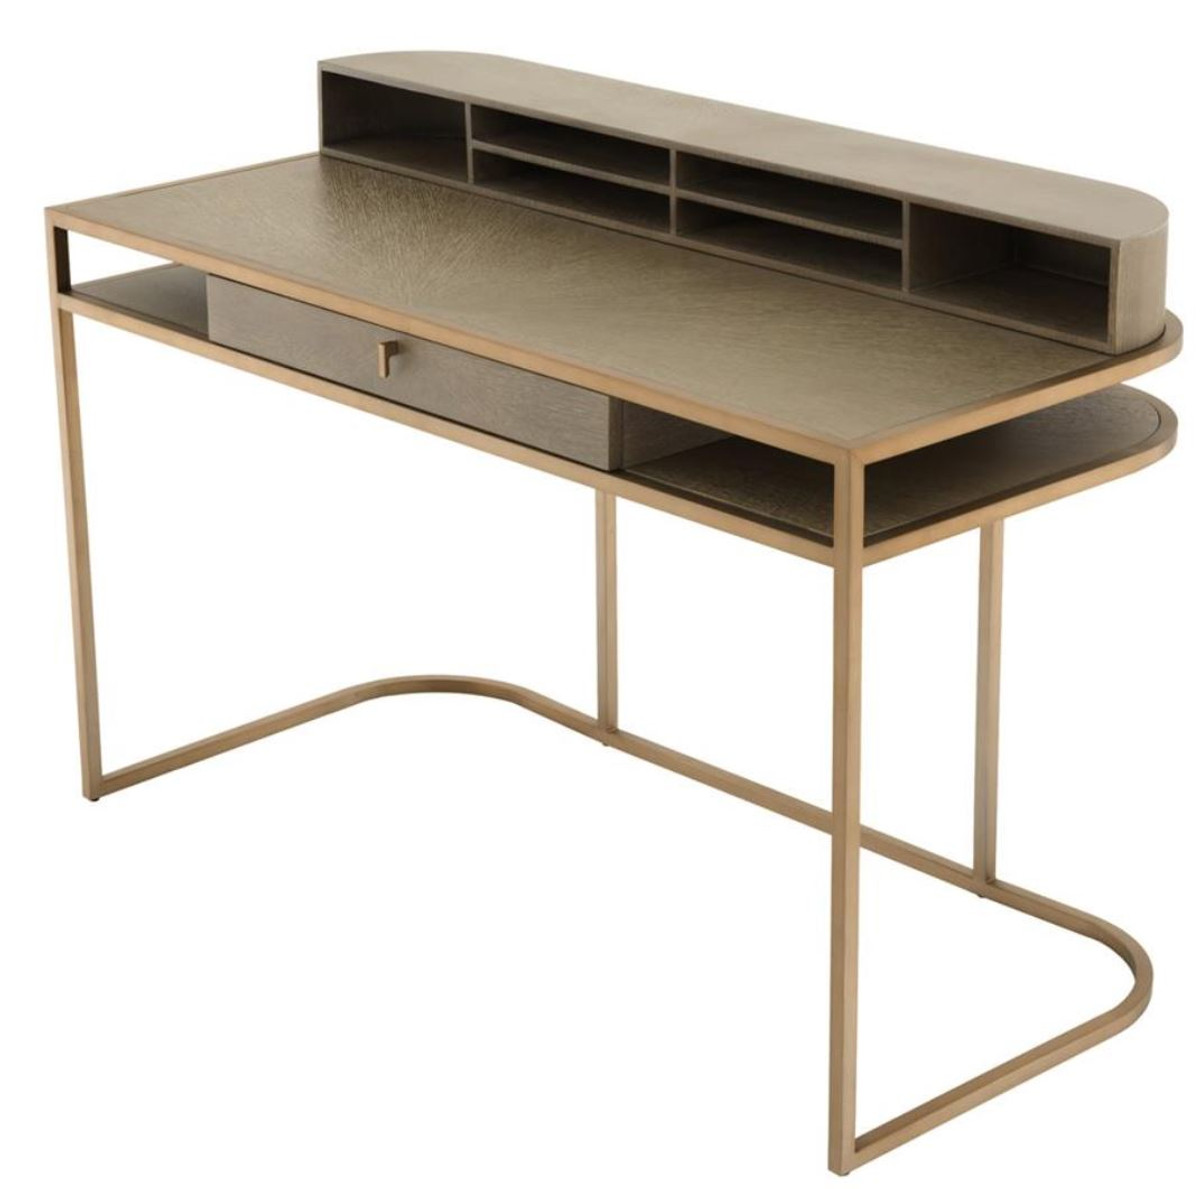 Casa Padrino Desk 130 X 60 X H 75 Cm Luxury Office Furniture